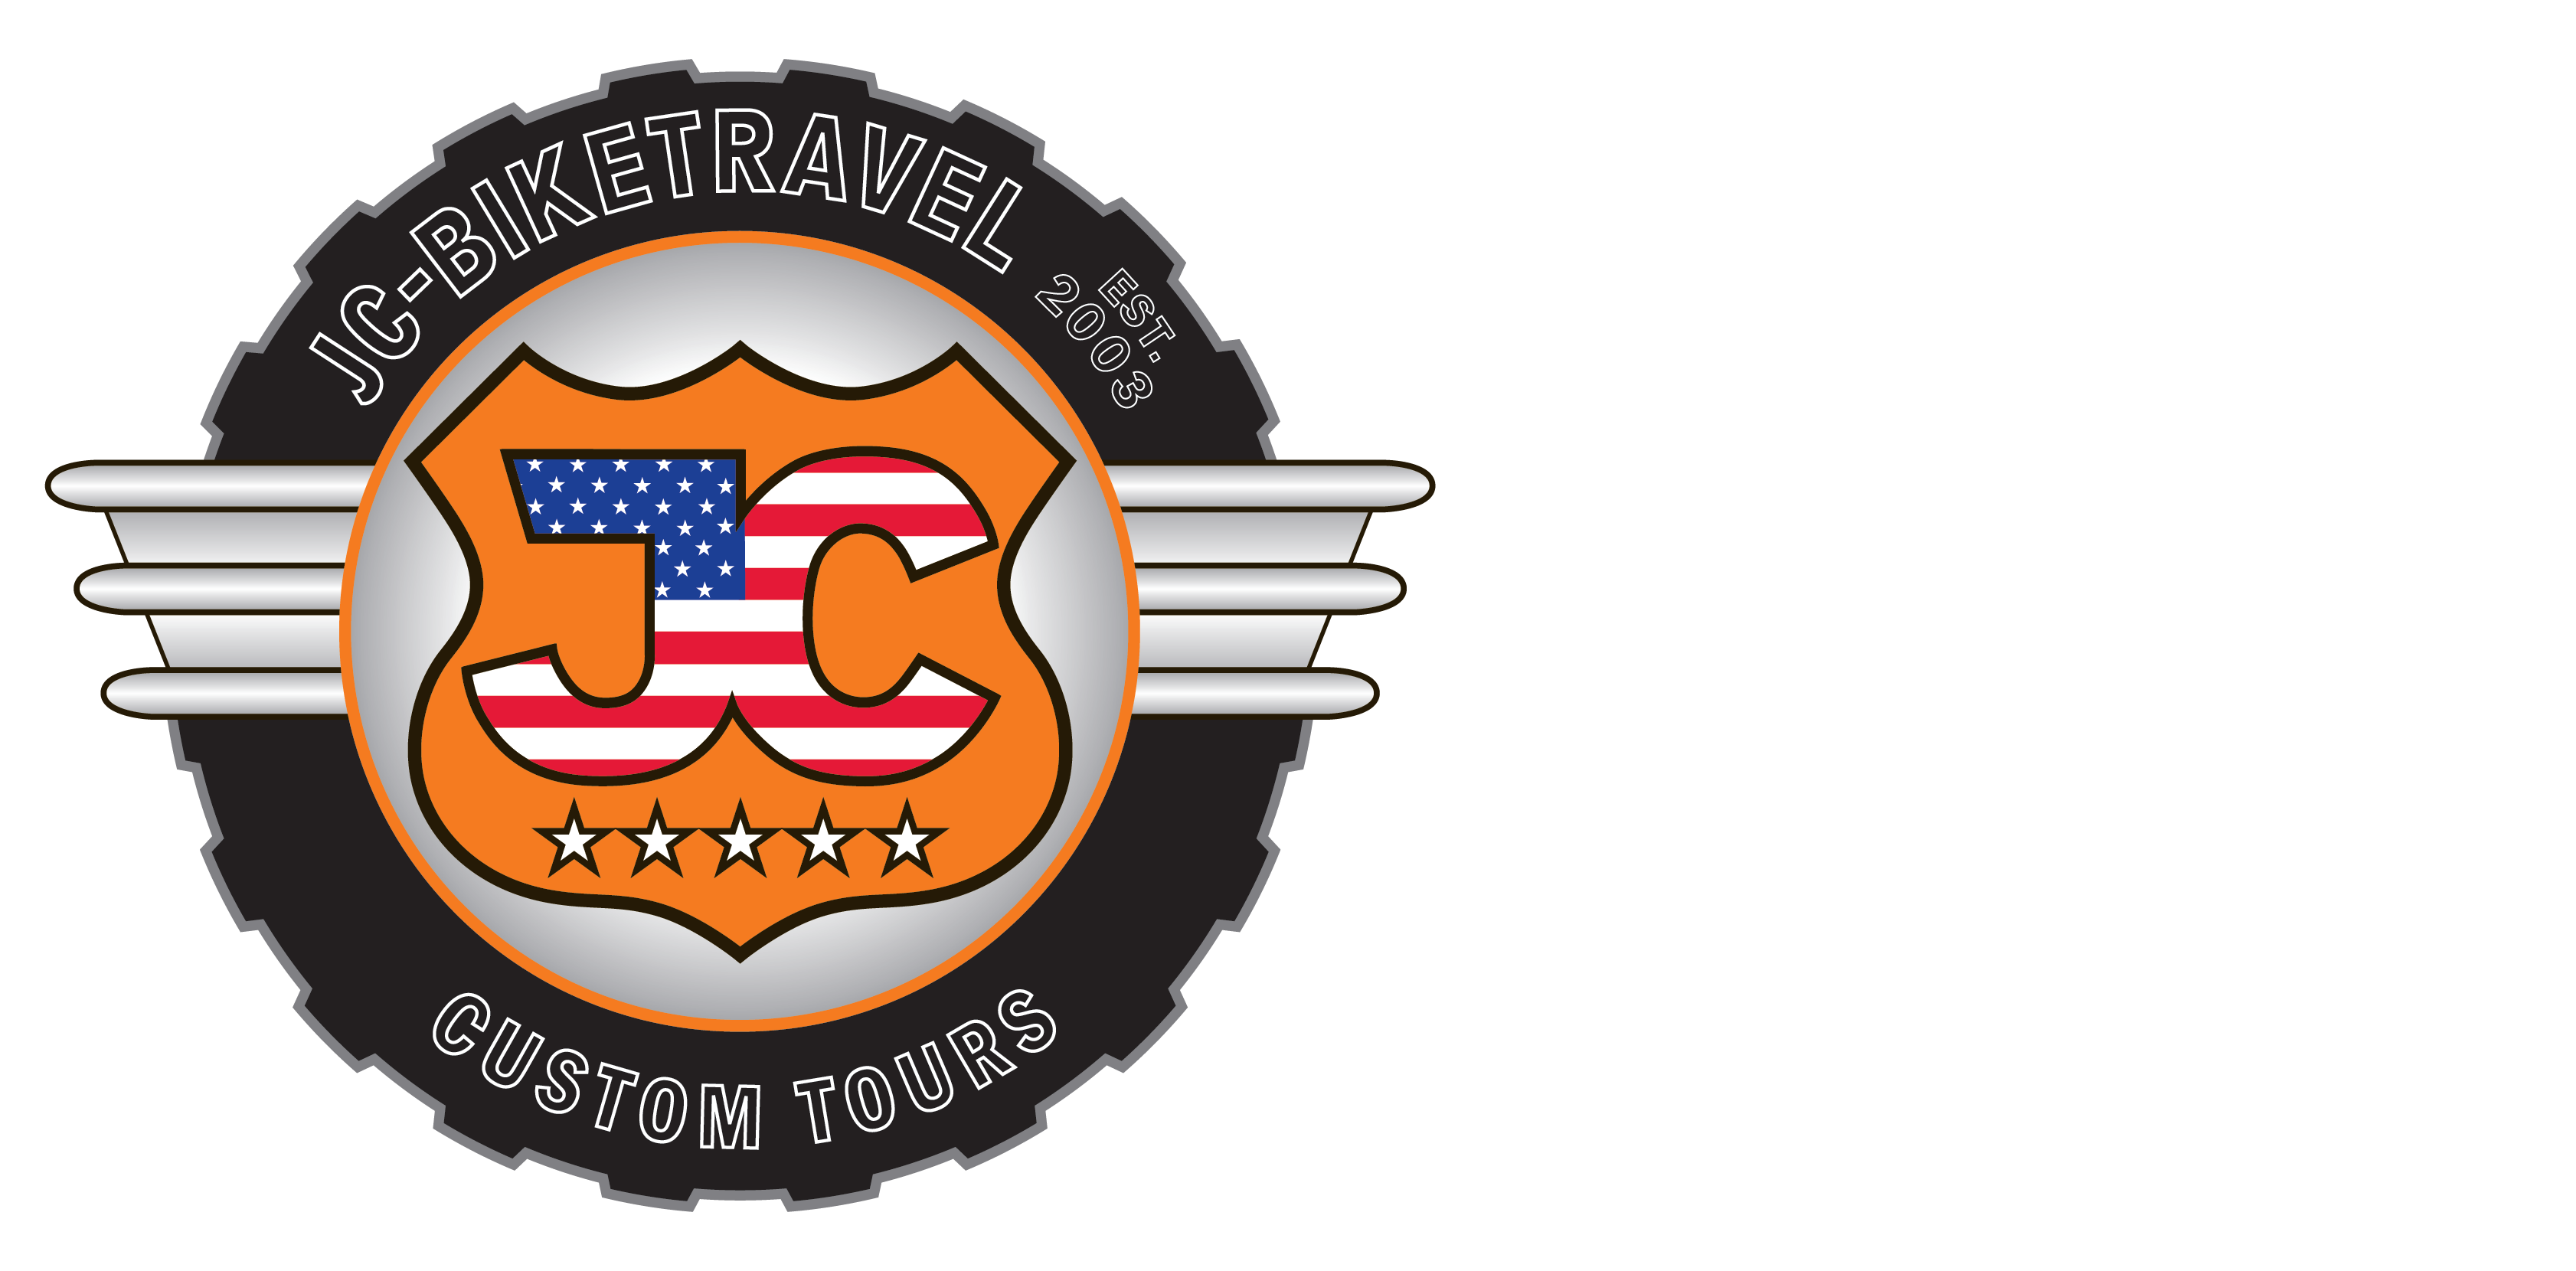 JC-Biketravel logo